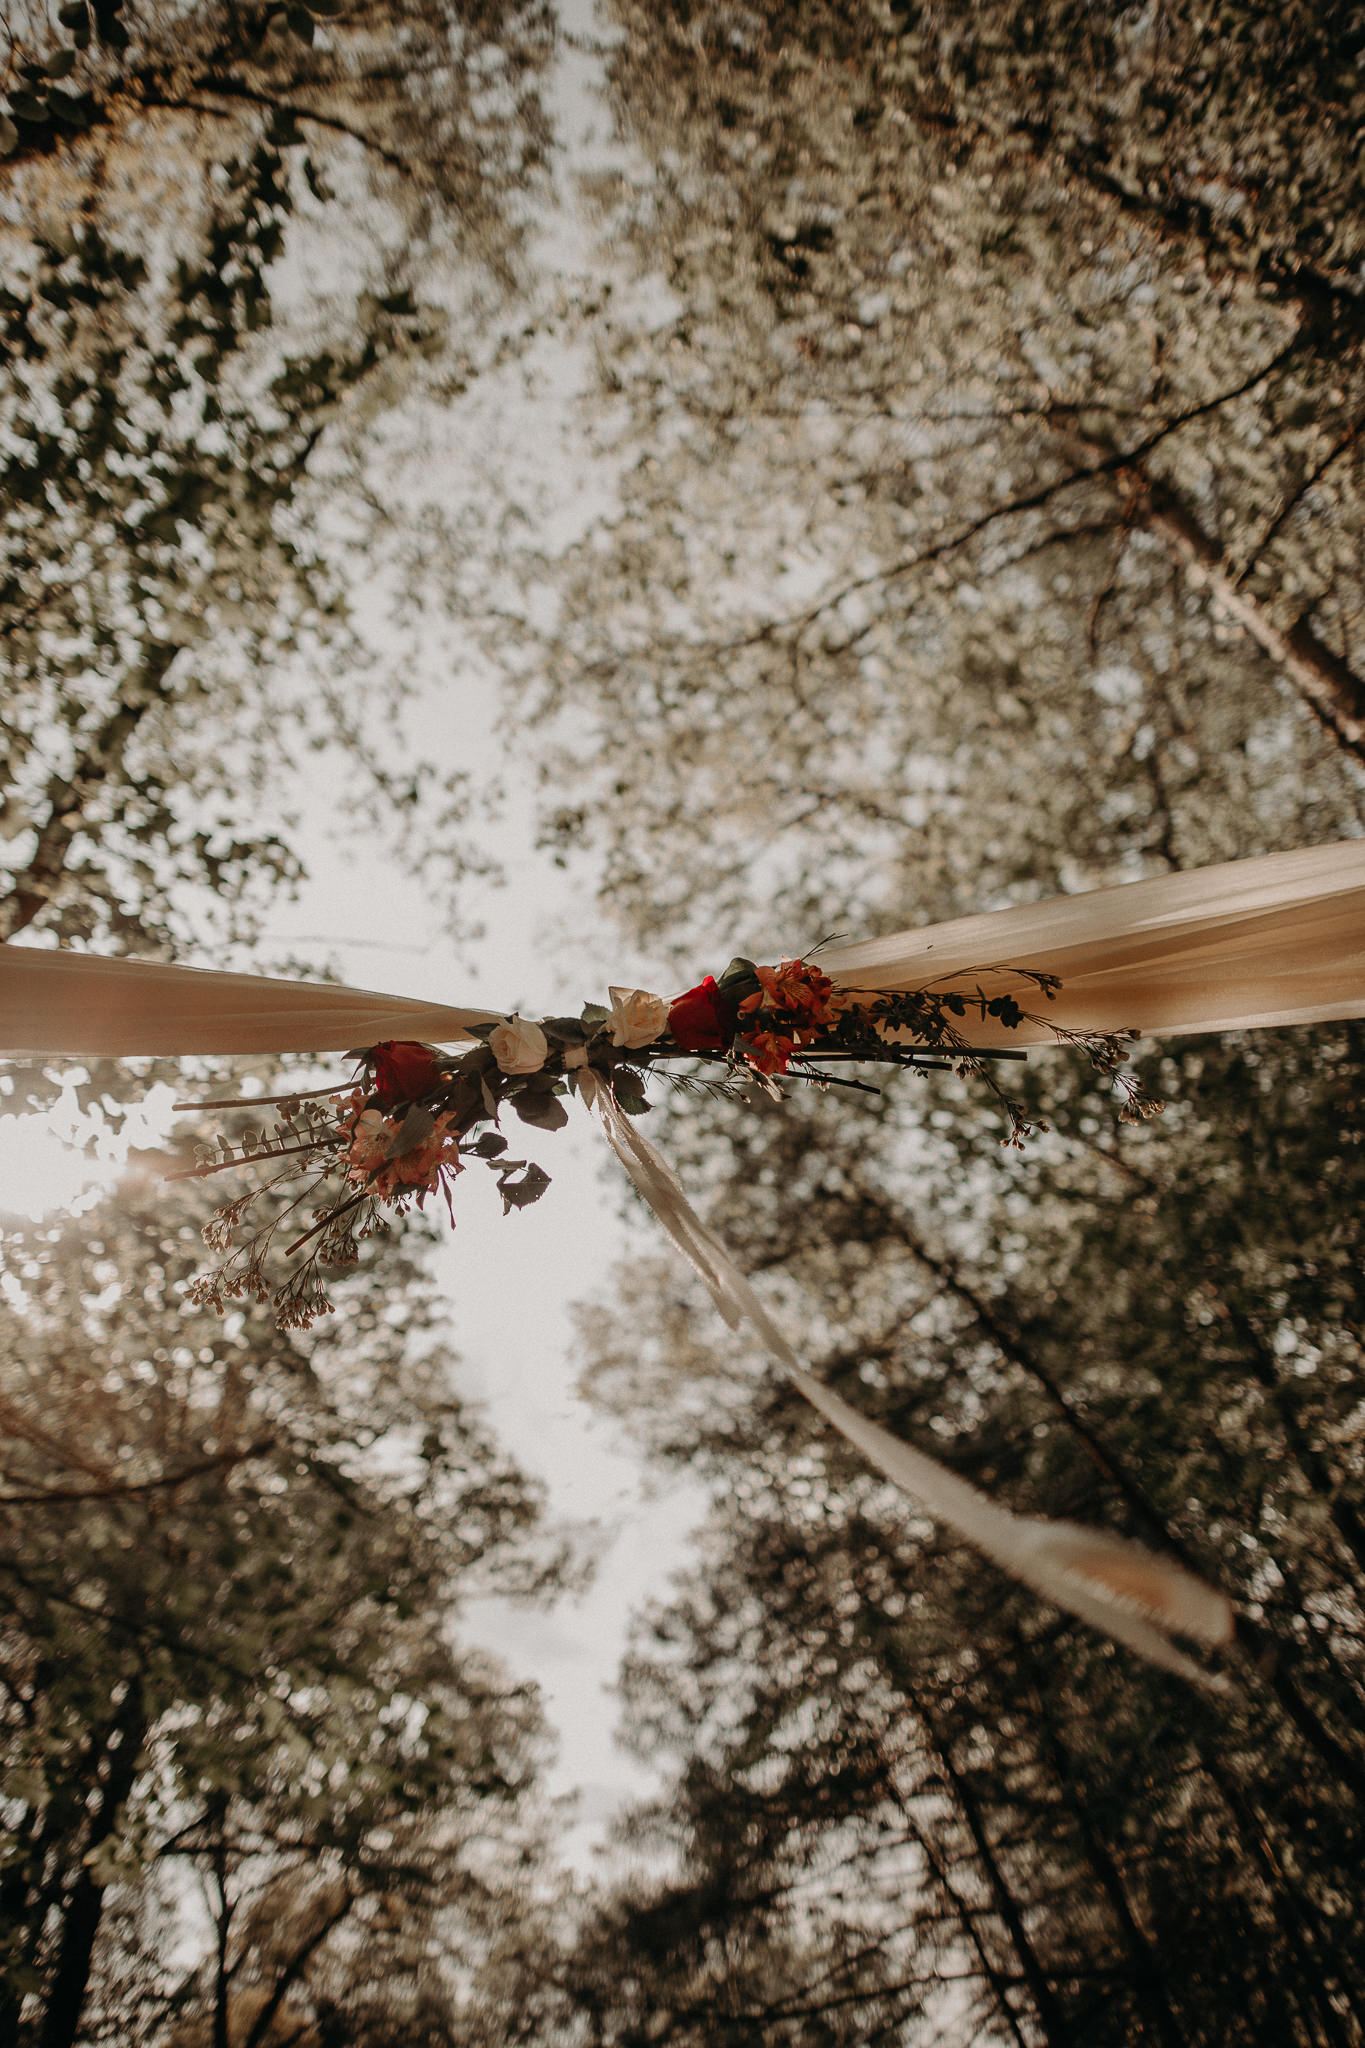 53- Forest wedding boho enchanched fairytale wedding atlanta - ga , intimate, elopement, nature, greens, good vibes. Aline Marin Photography .jpg.JPG